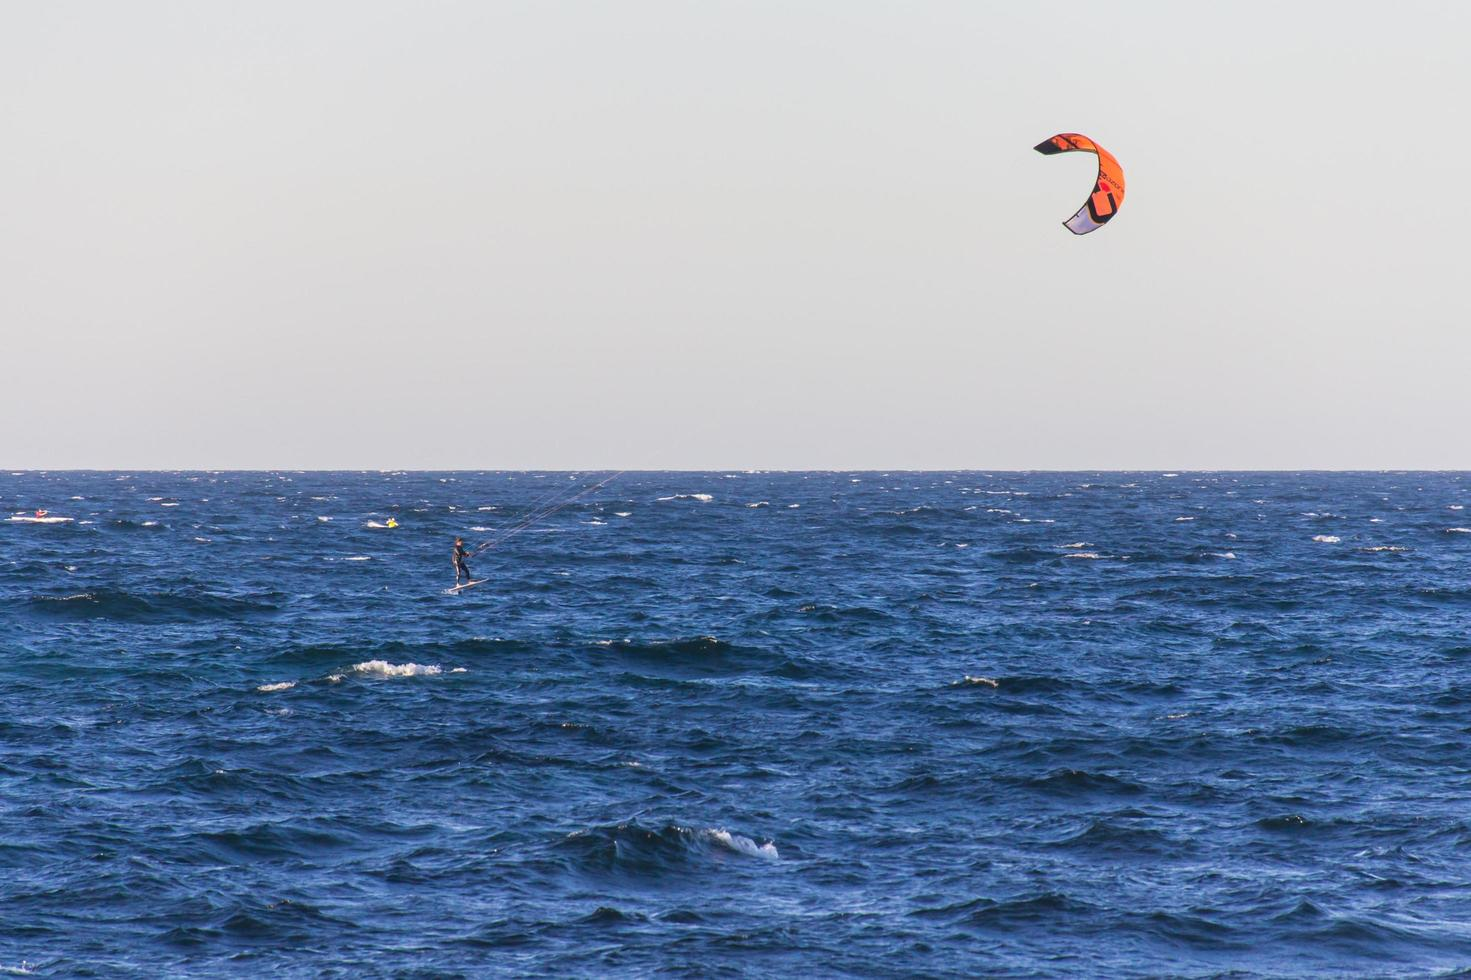 New South Wales, Australia, 2020 - Person parasailing on water photo